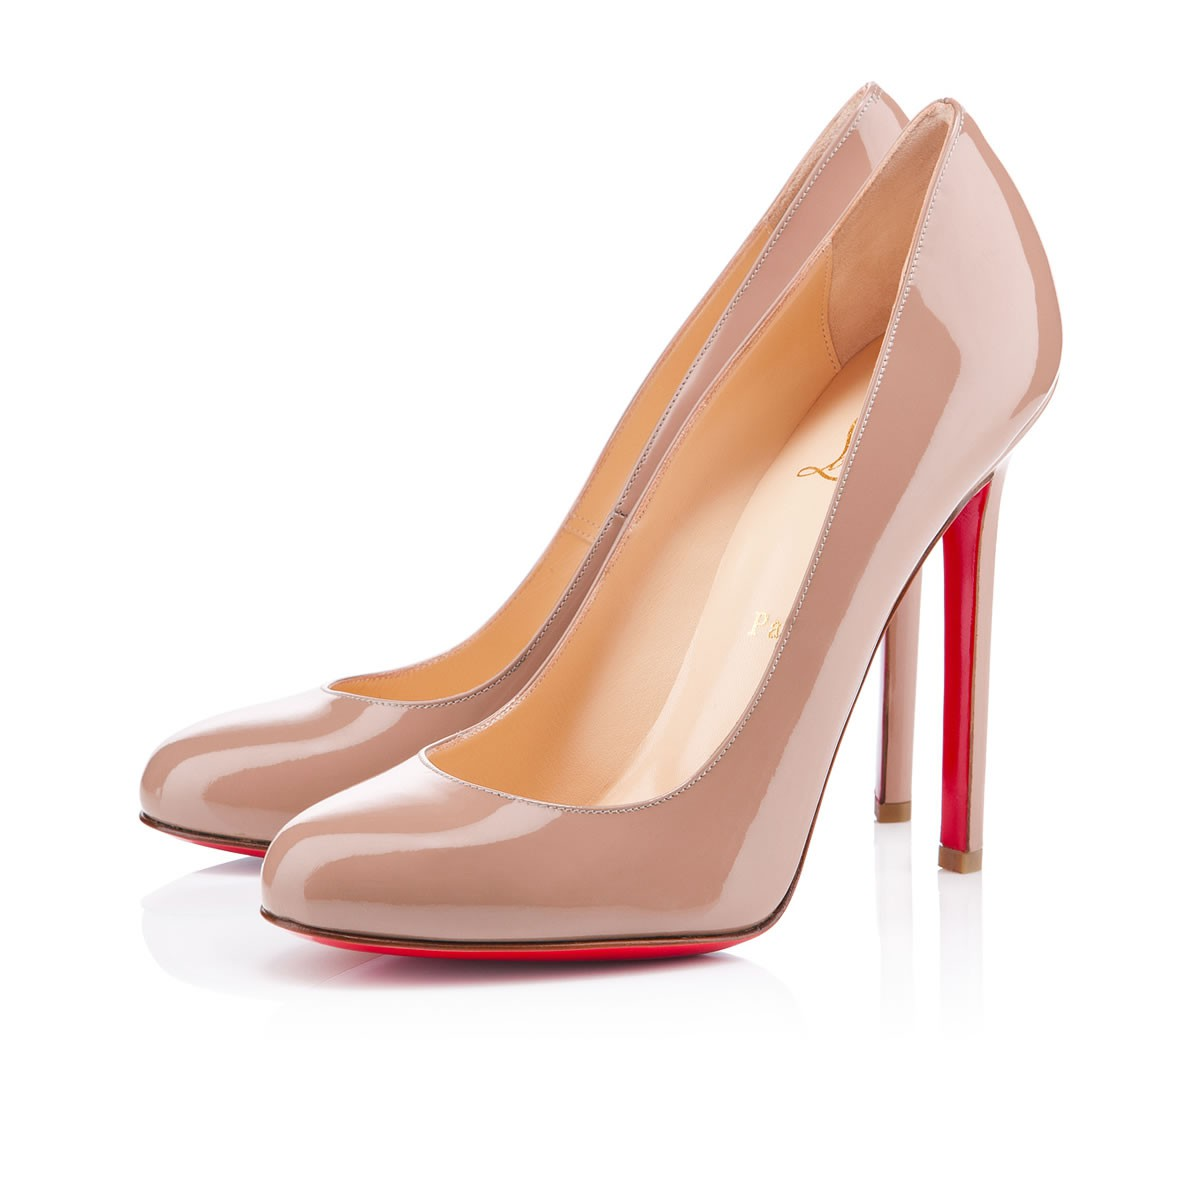 Gallery. Women s Saint Laurent Loulou Women s Christian Louboutin ... 4dc5a6af68f1